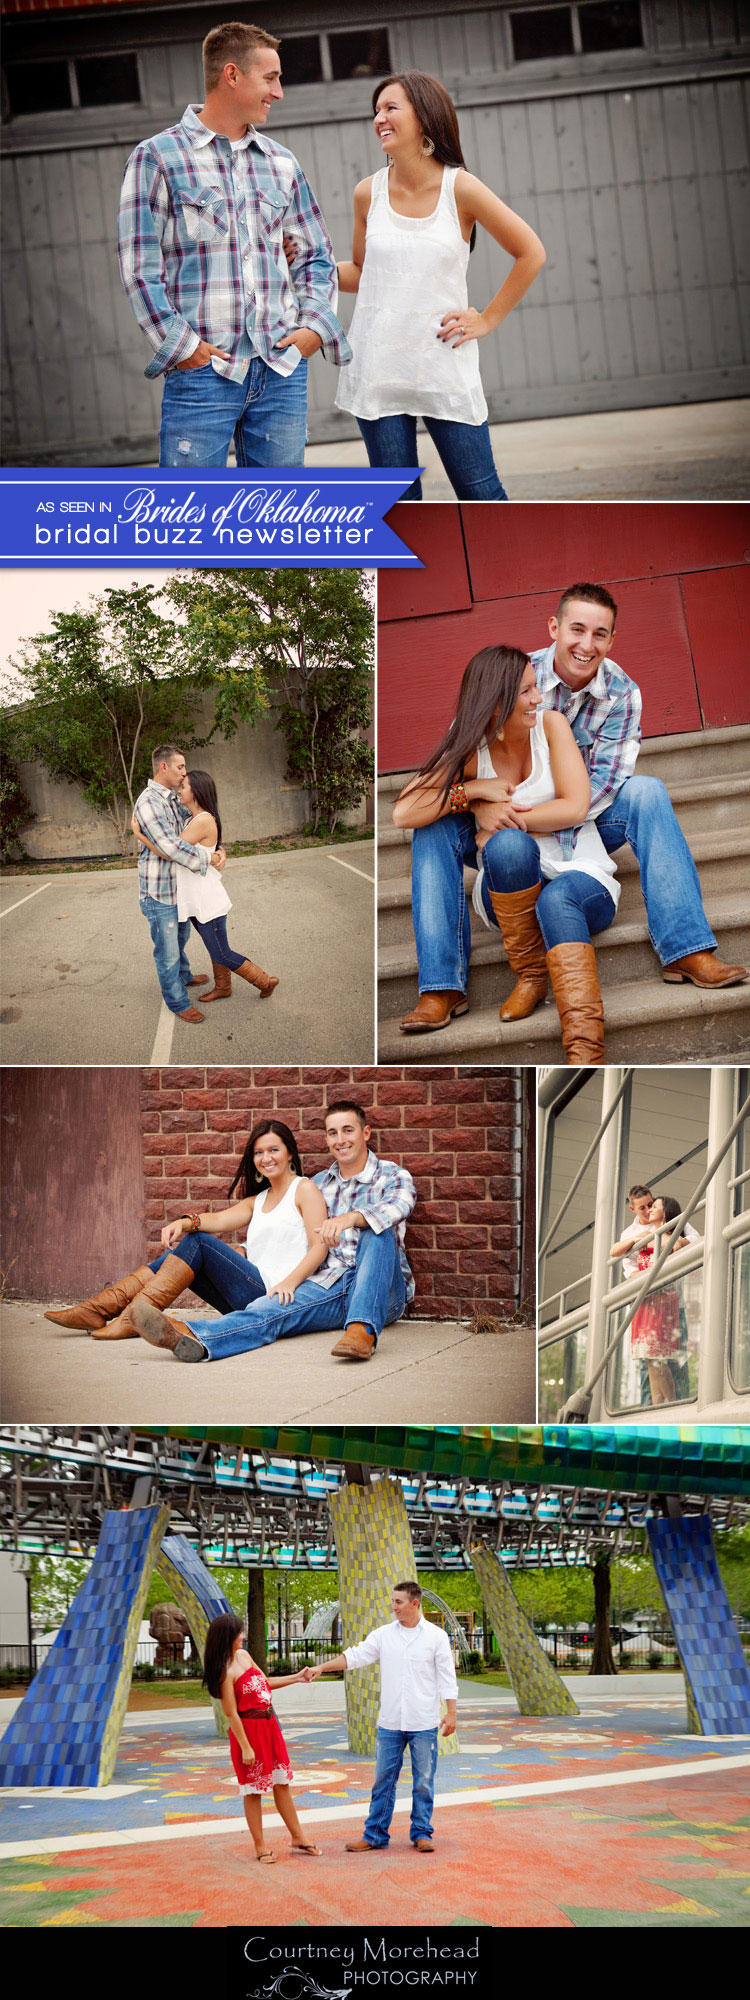 Brides of Oklahoma almost married couple captured by Oklahoma wedding photographer Courtney Morehead Photography